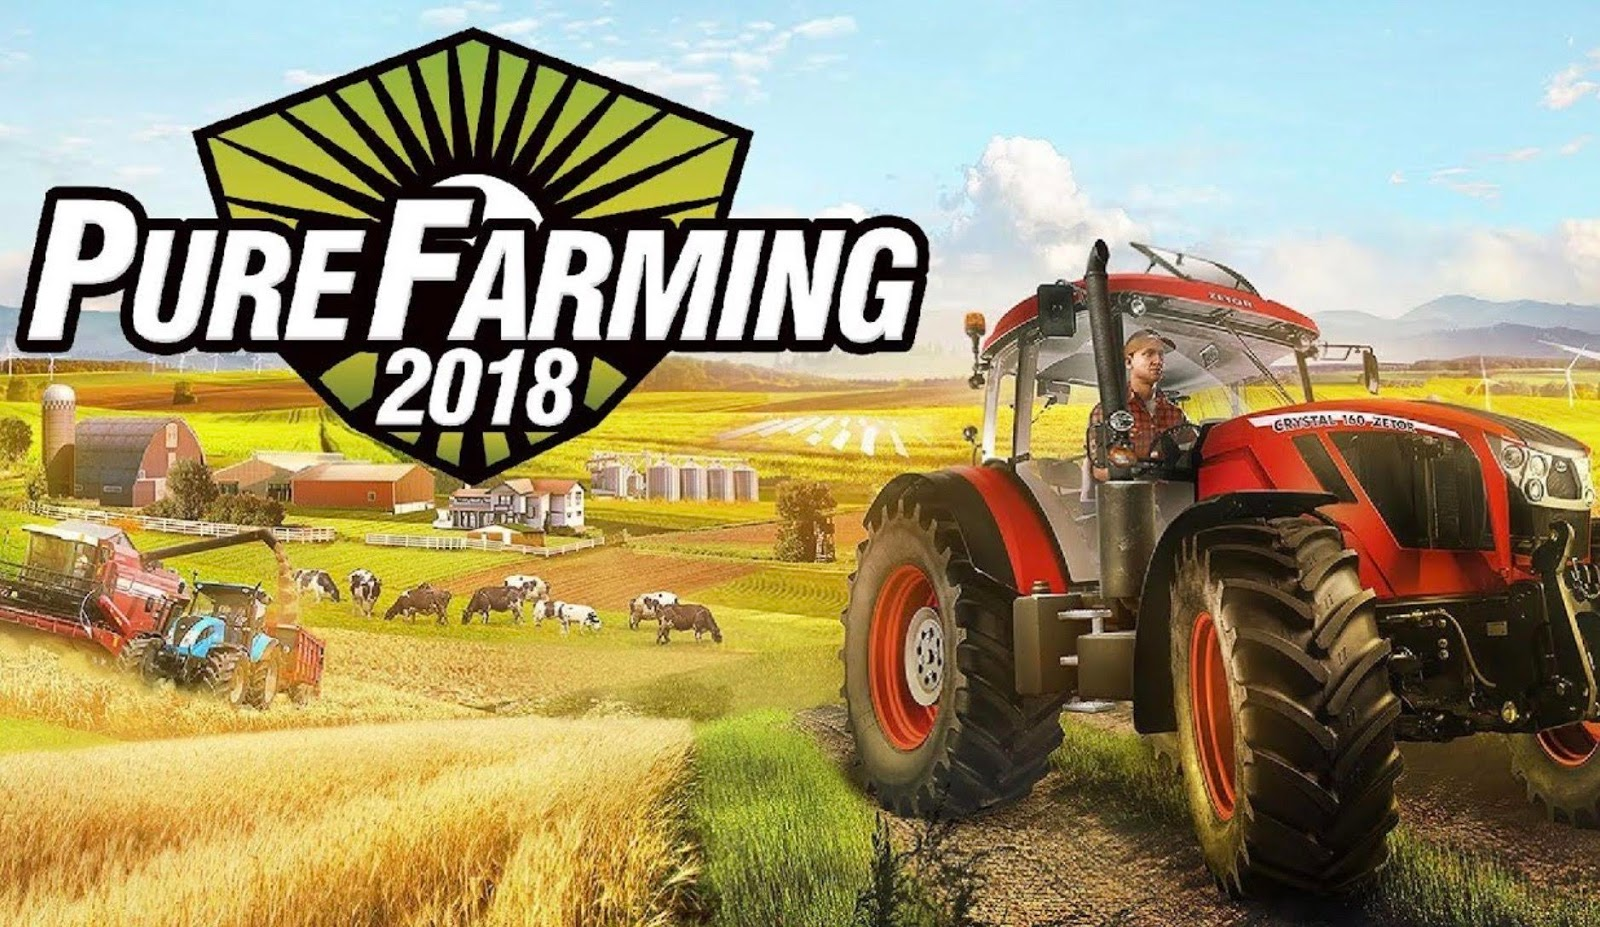 pure-farming-2018-big-machines